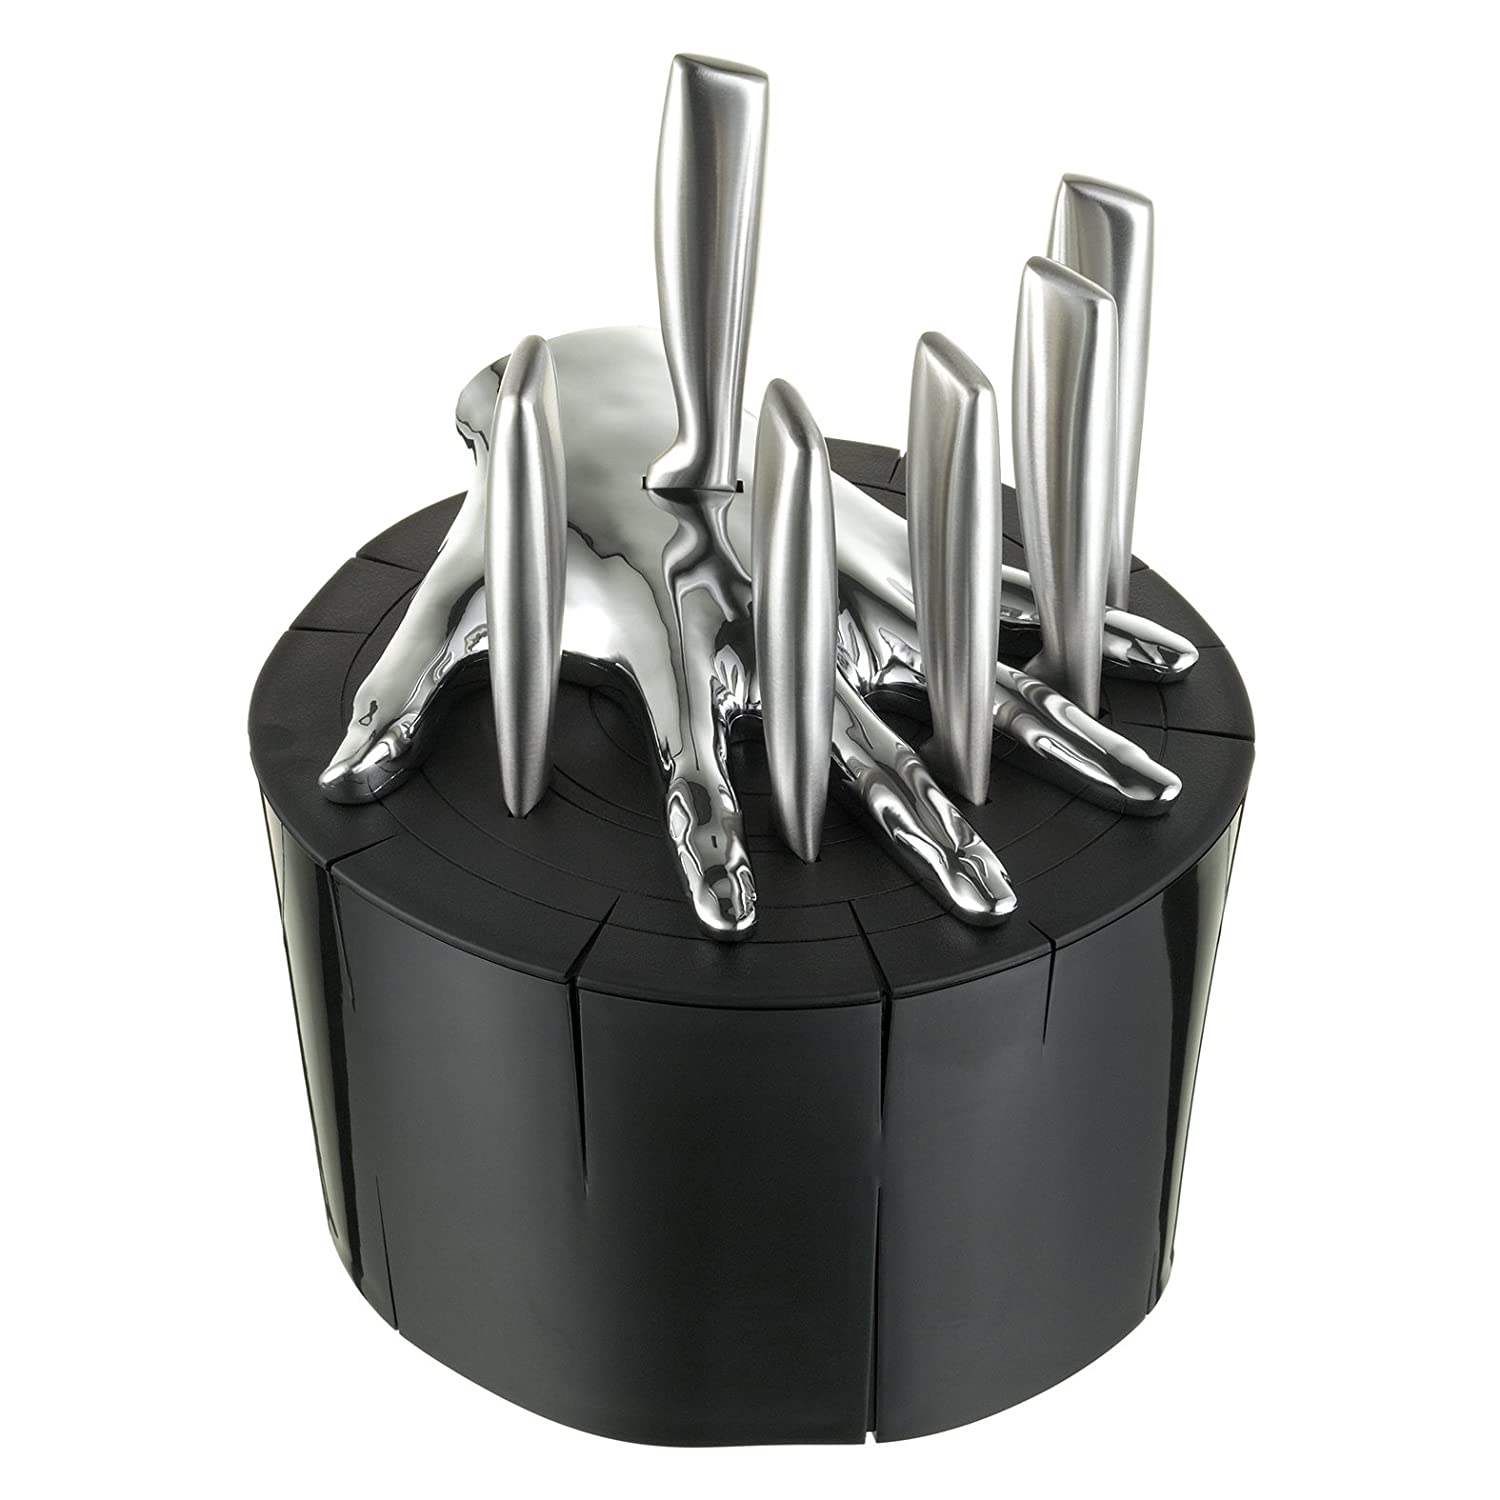 Five-Fingers-Knife-Set